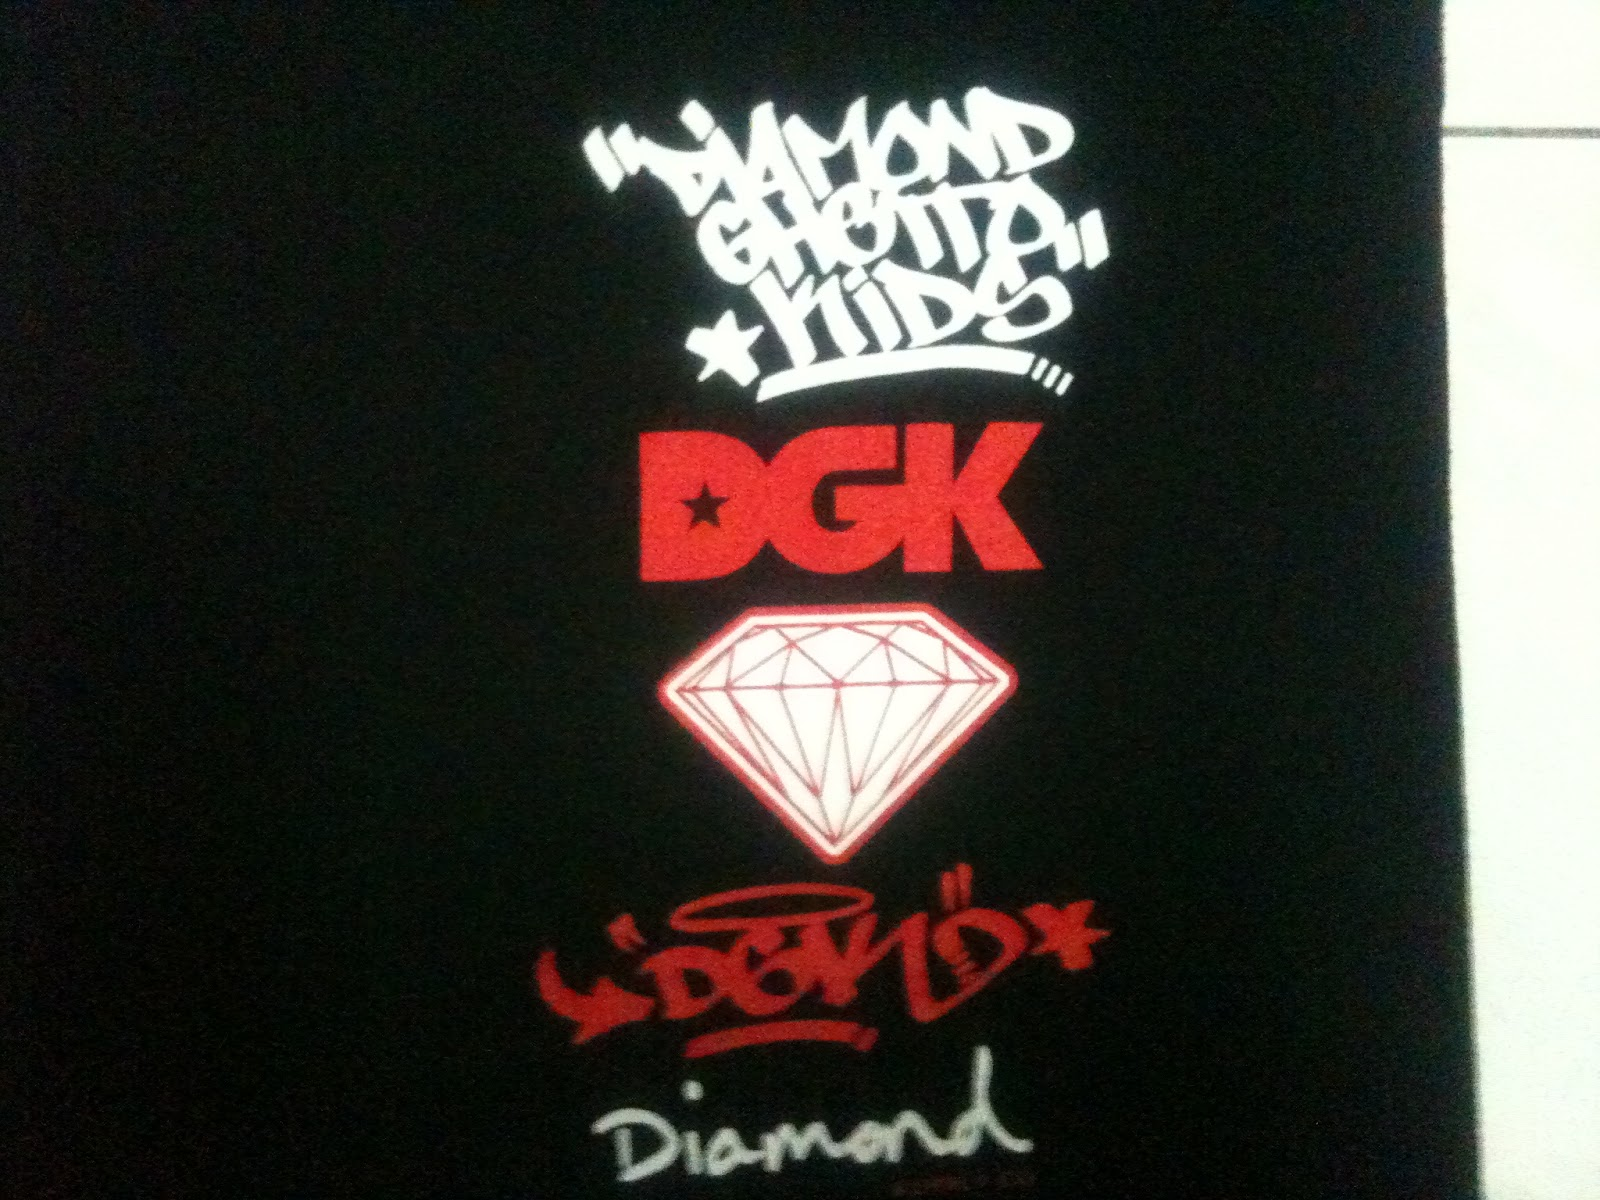 Dgk Wallpaper - WallpaperSafari